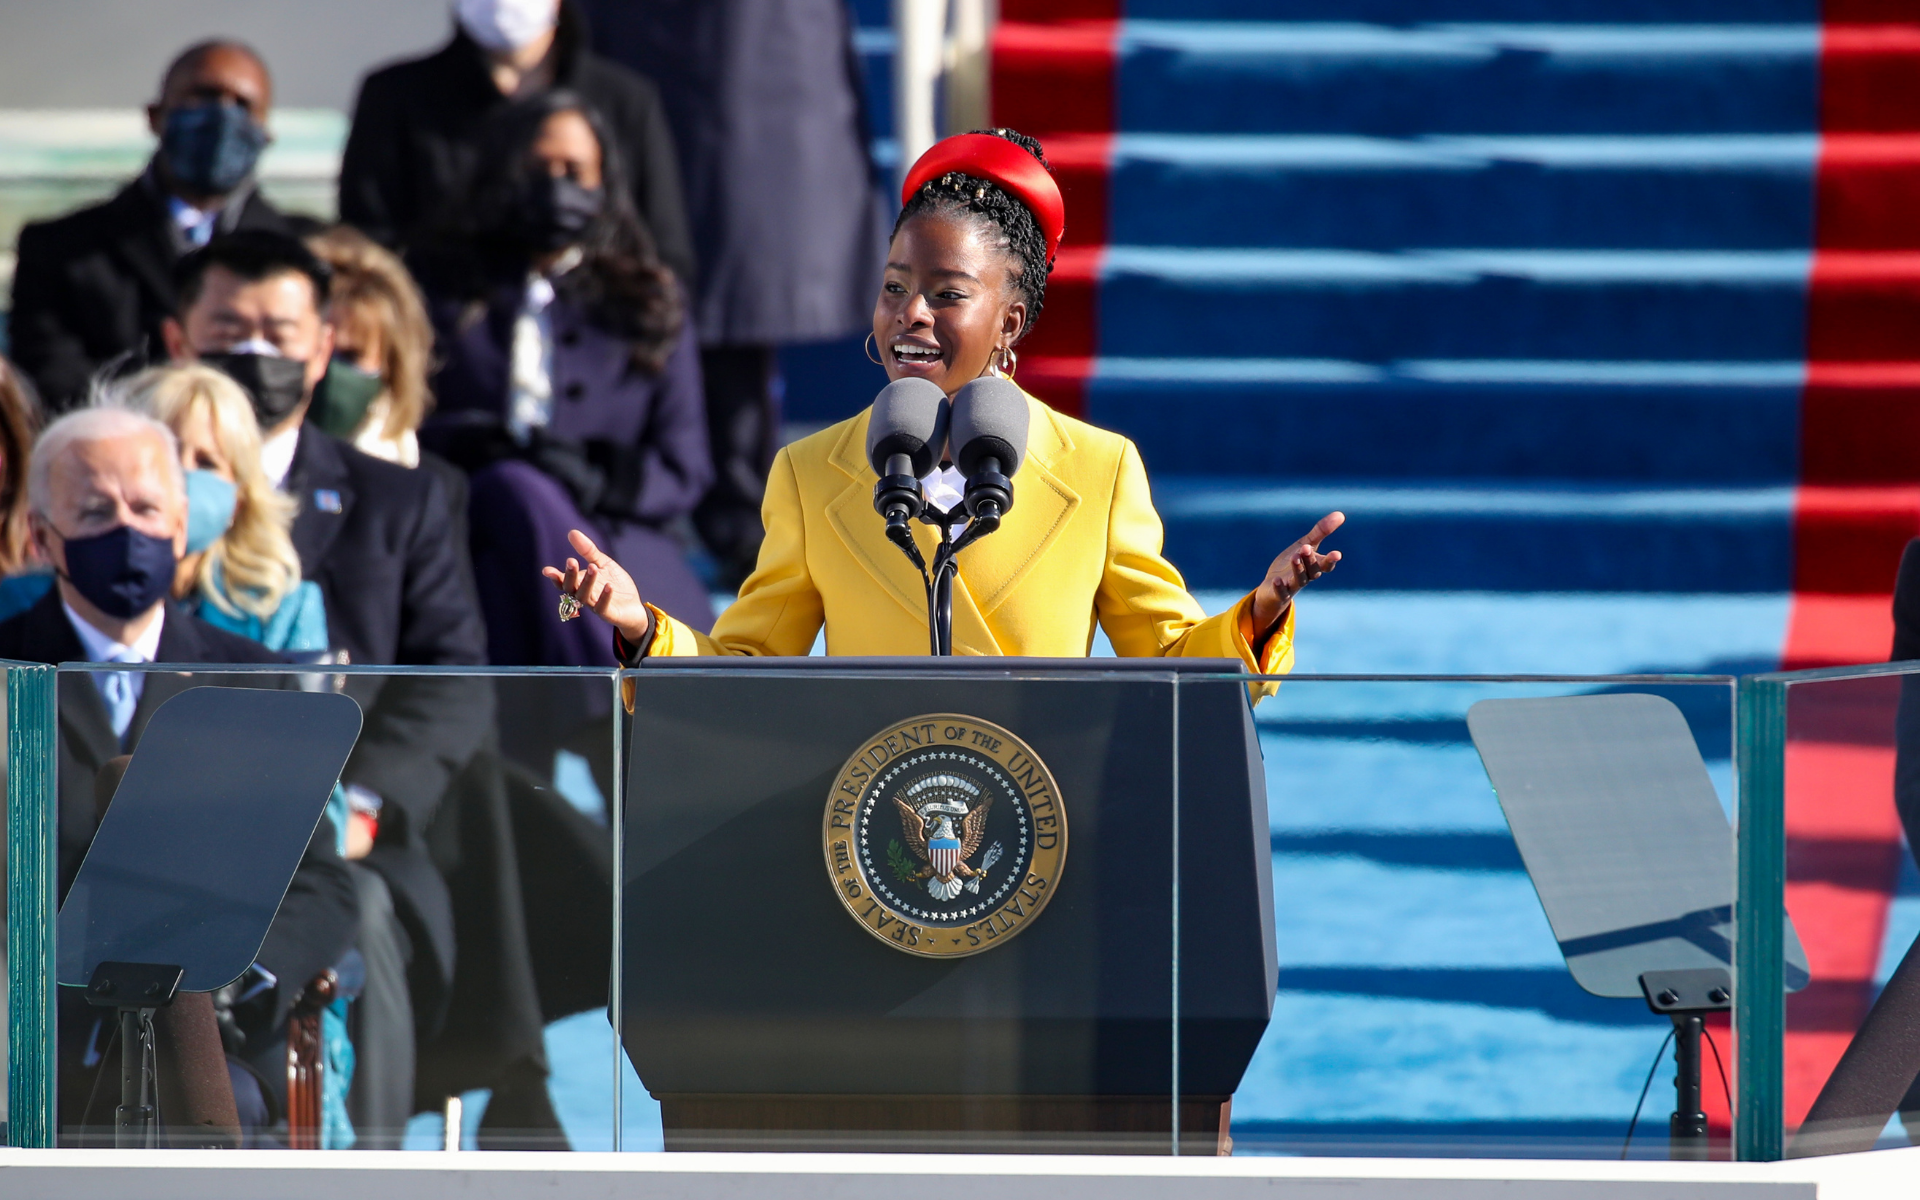 Amanda Gorman at the Presidential Inauguration Ceremony